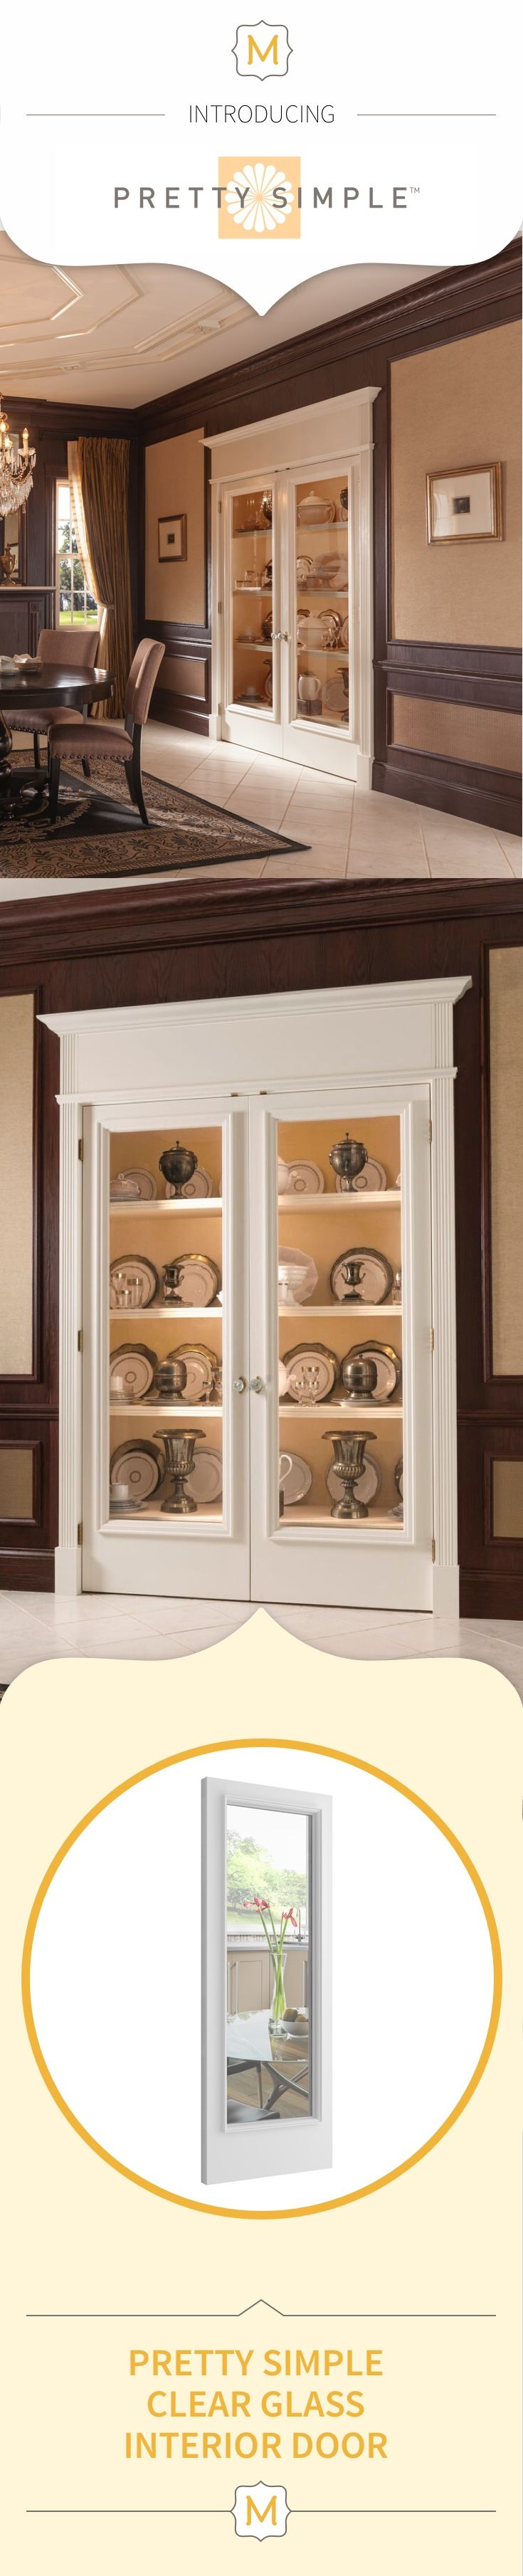 Typical china cabinets are so yesterday. These clear glass doors from the Metrie Pretty Simple Collection are the perfect way to display your finer antiques in a very modern way.